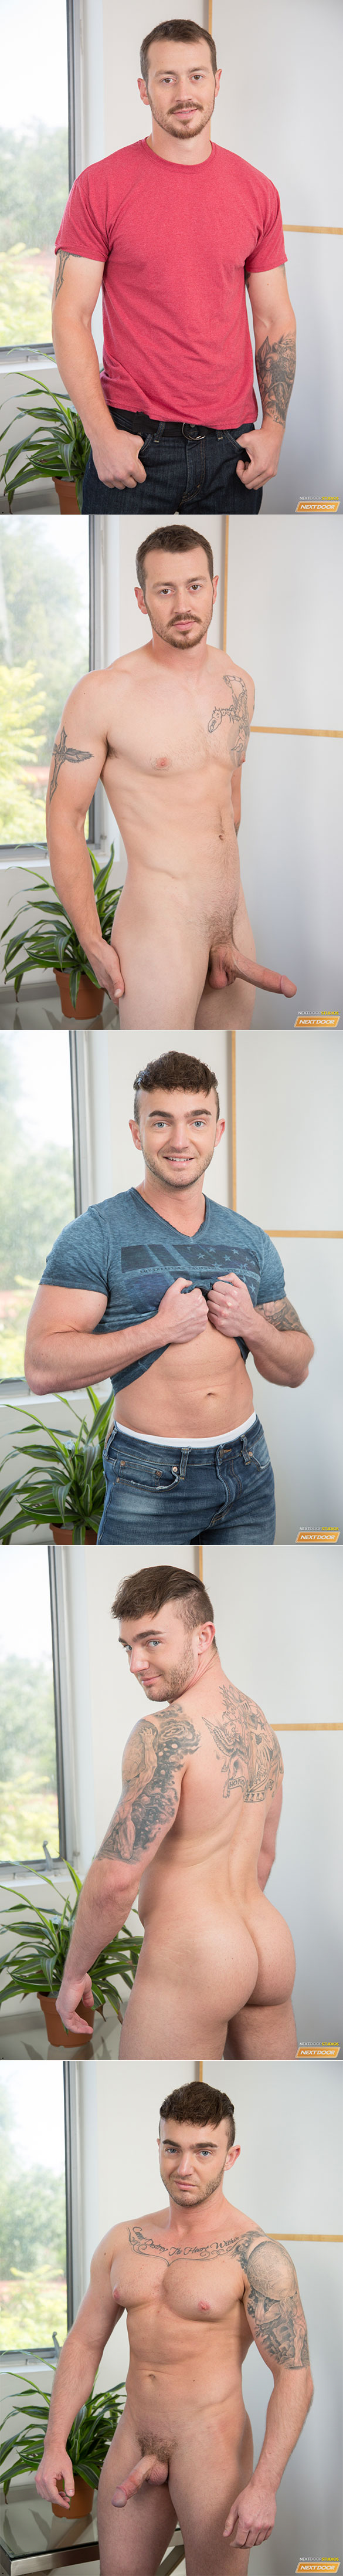 "Next Door Studios: Jake Ashford rides Mark Long's big cock bareback in ""My Friend's Hot Brother"""